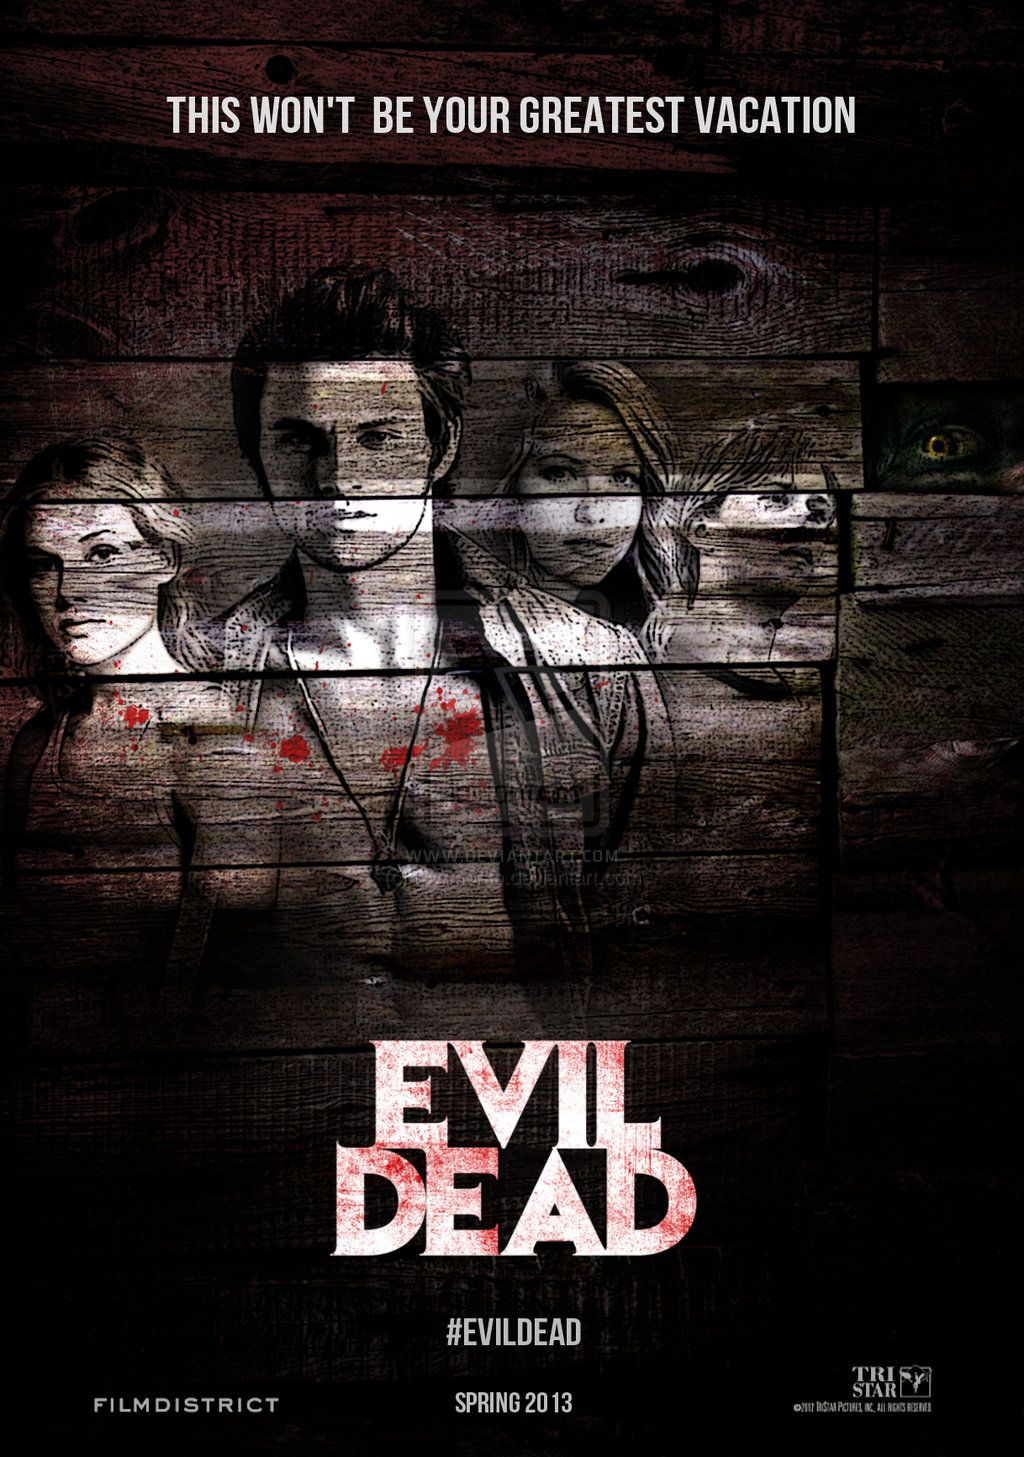 Evil Dead, is in fact, the most terrifying film you will